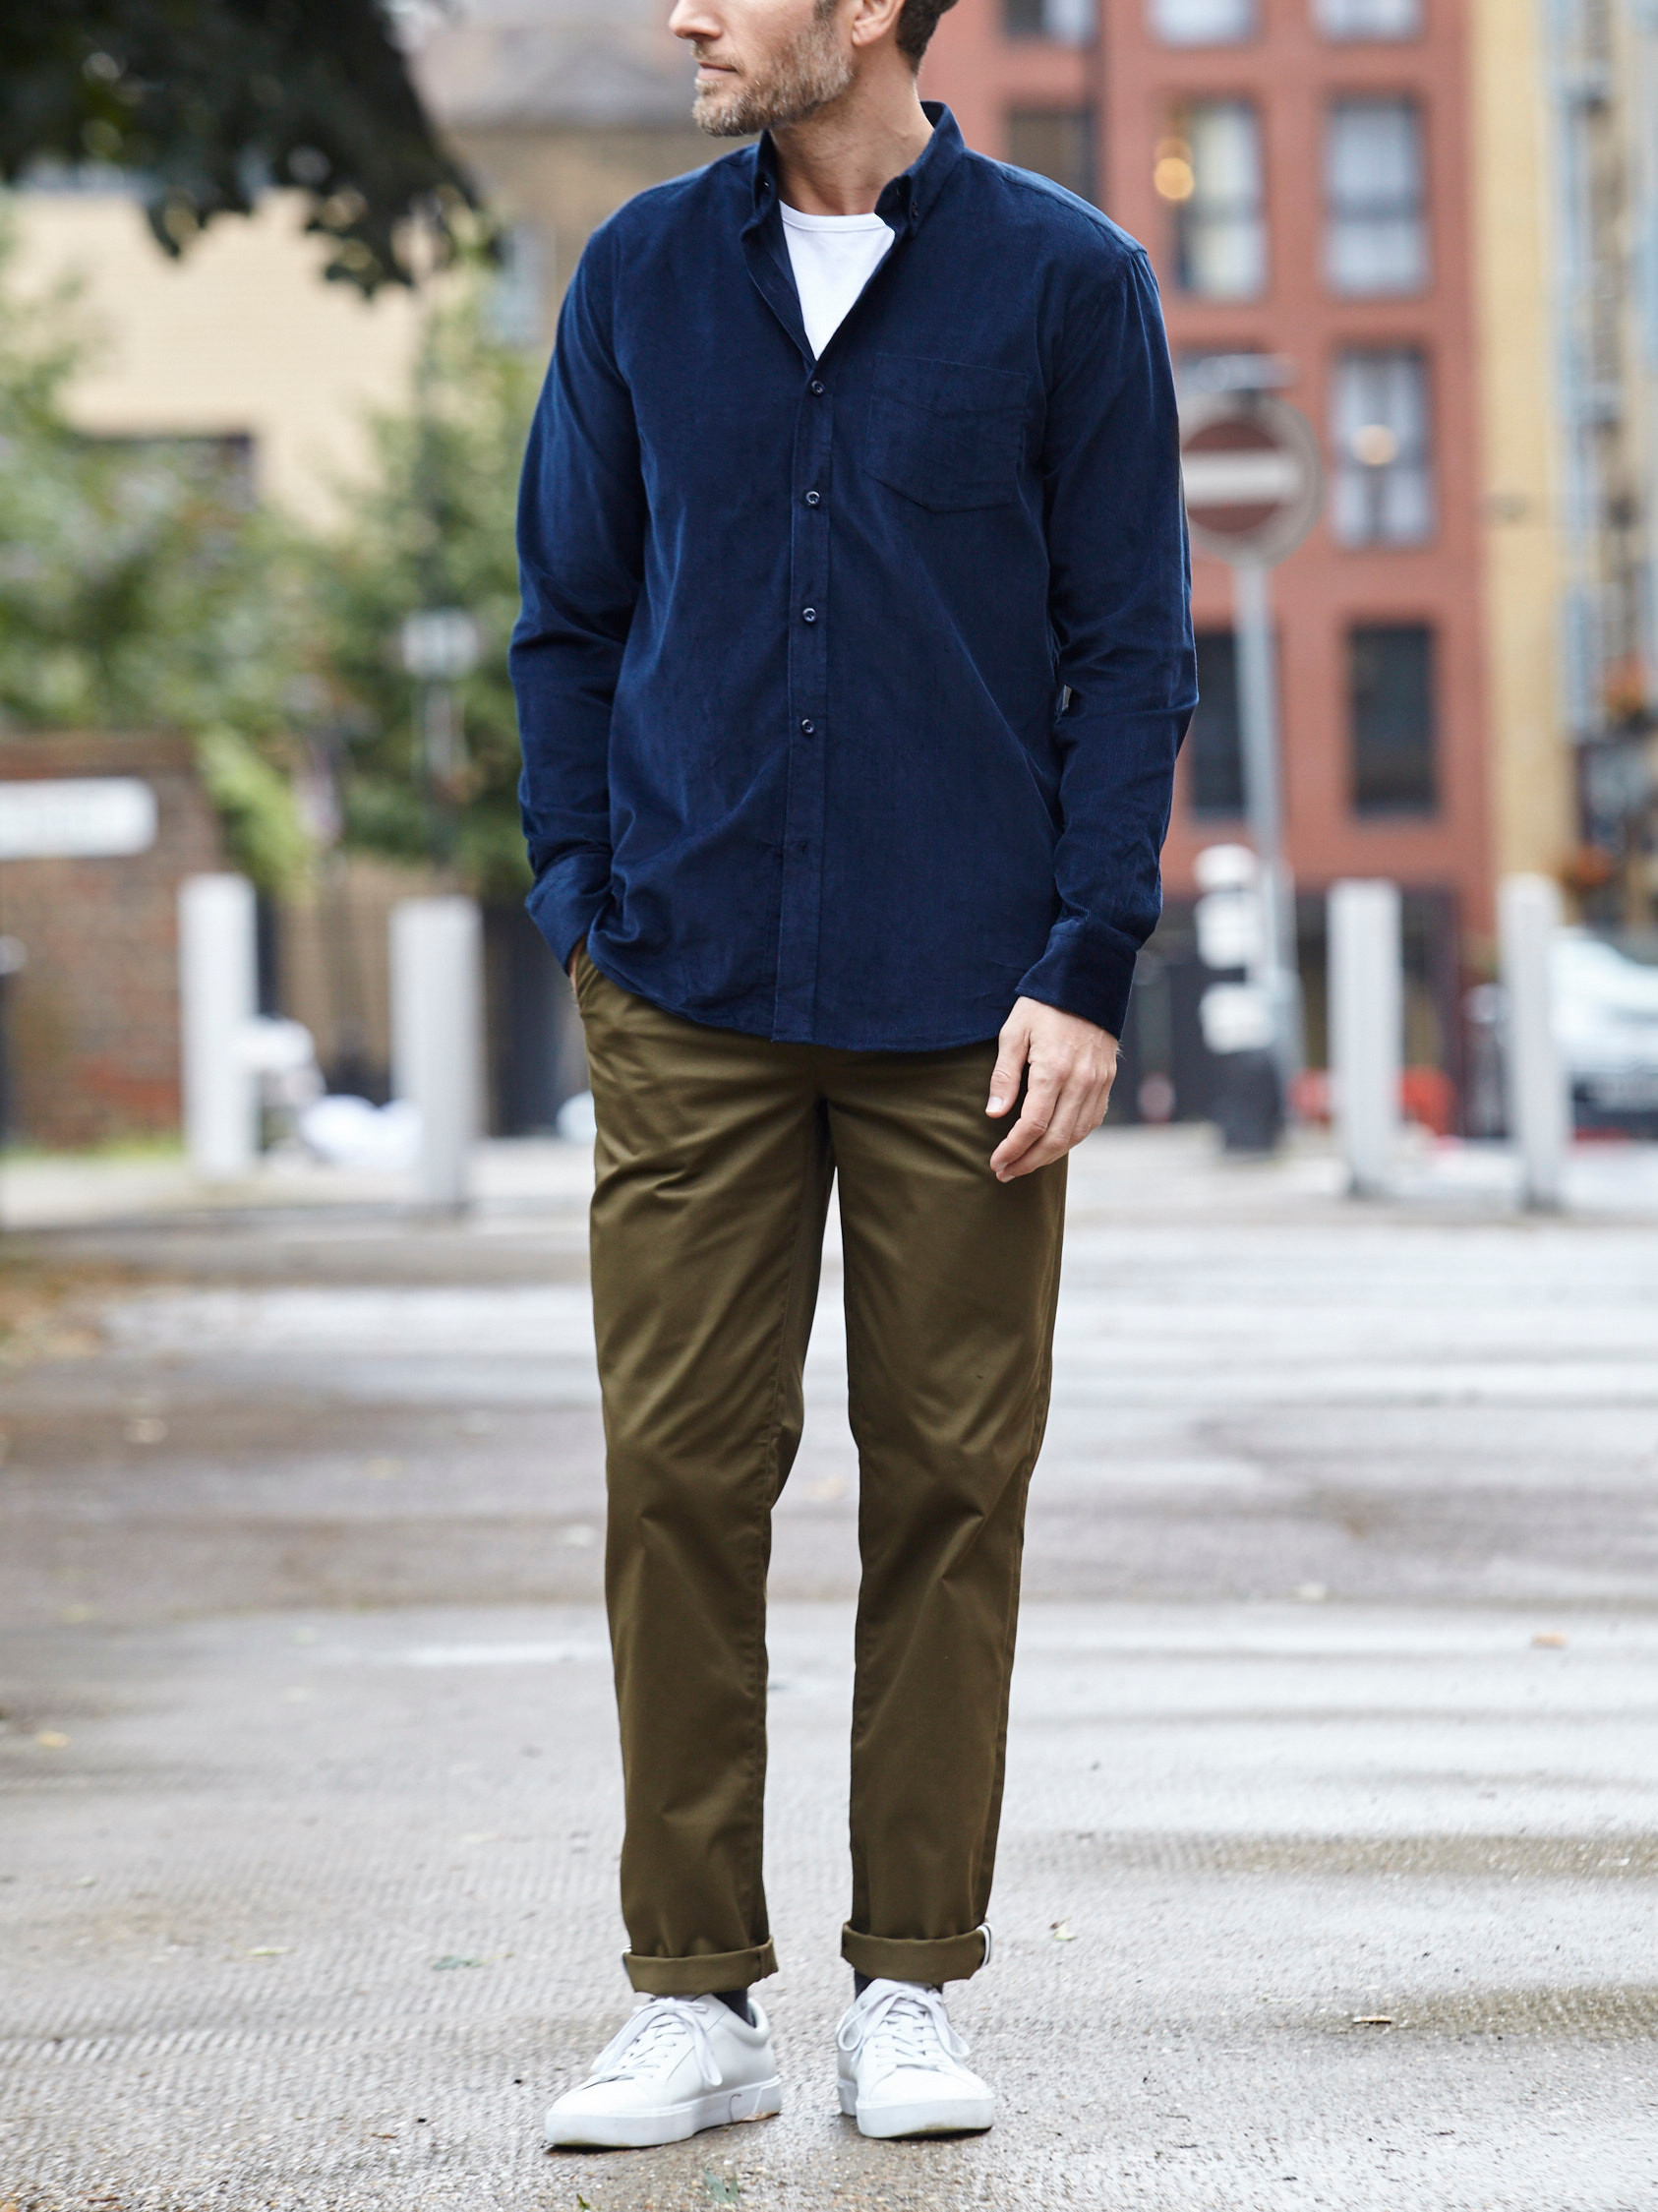 Men's outfit idea for 2021 with navy casual shirt, white crew neck t-shirt, colored chinos, white sneakers. Suitable for fall and winter.